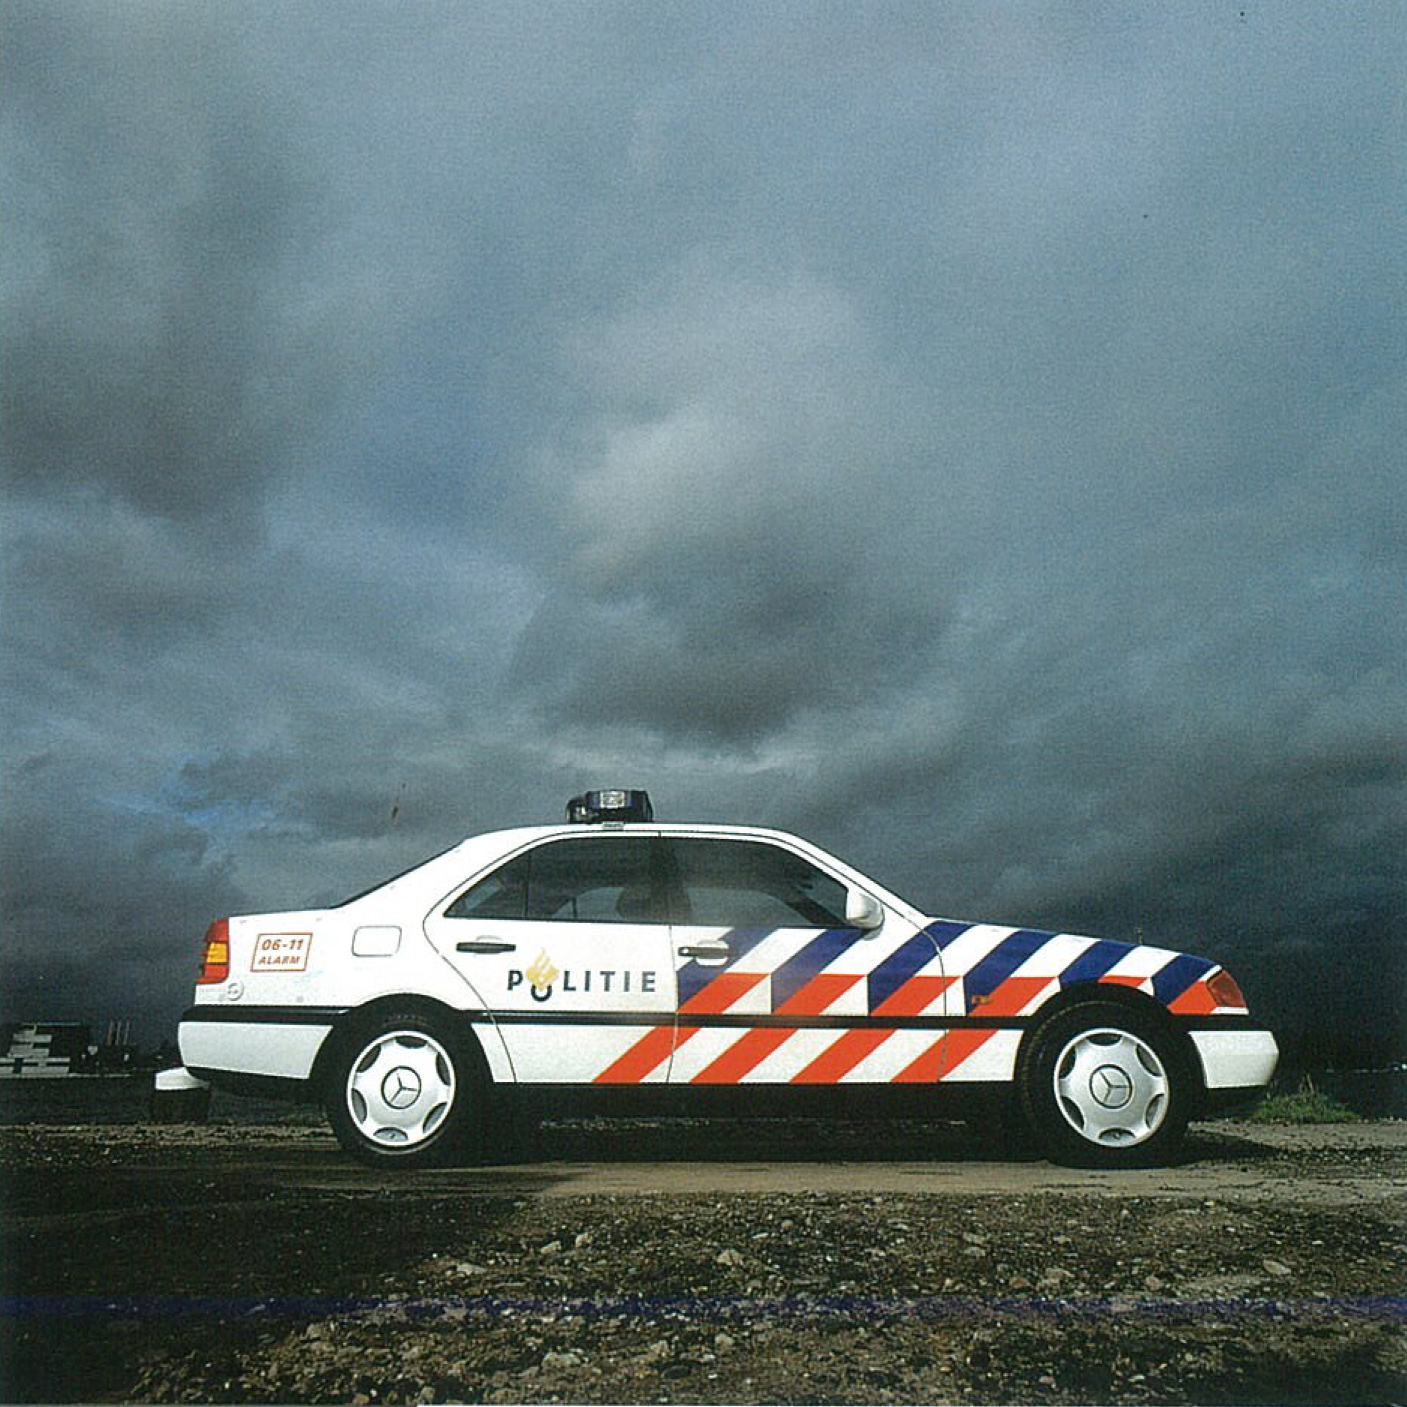 StudioDumbar_Dutch Police_Police Car.jpg